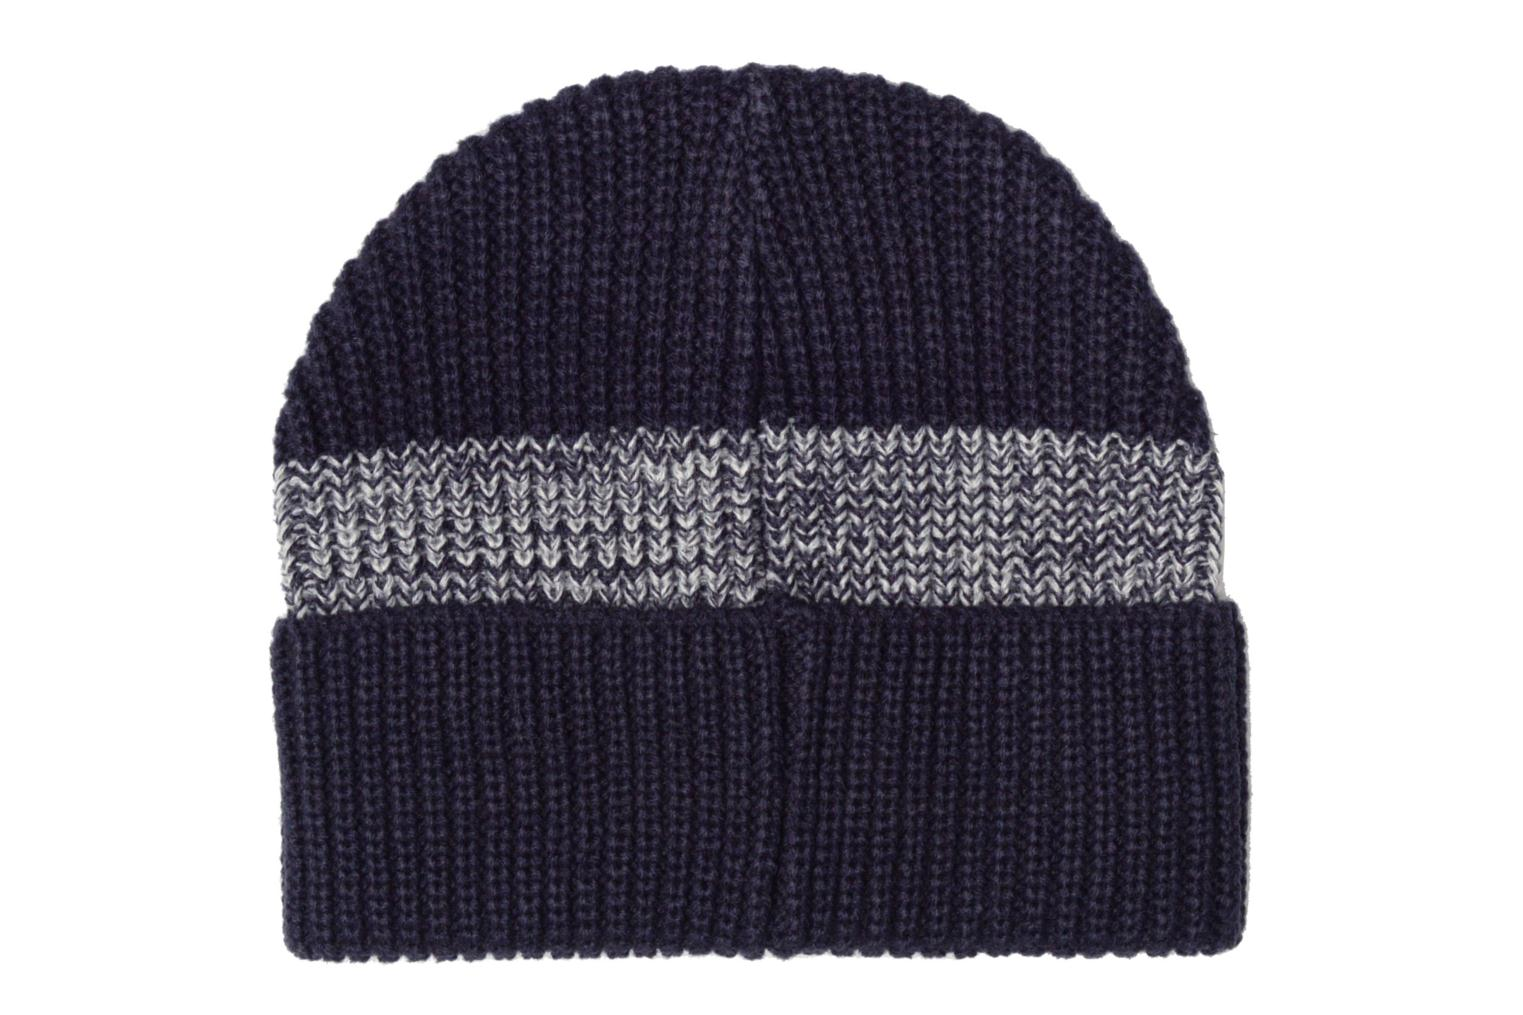 Bonnet 2 Navy